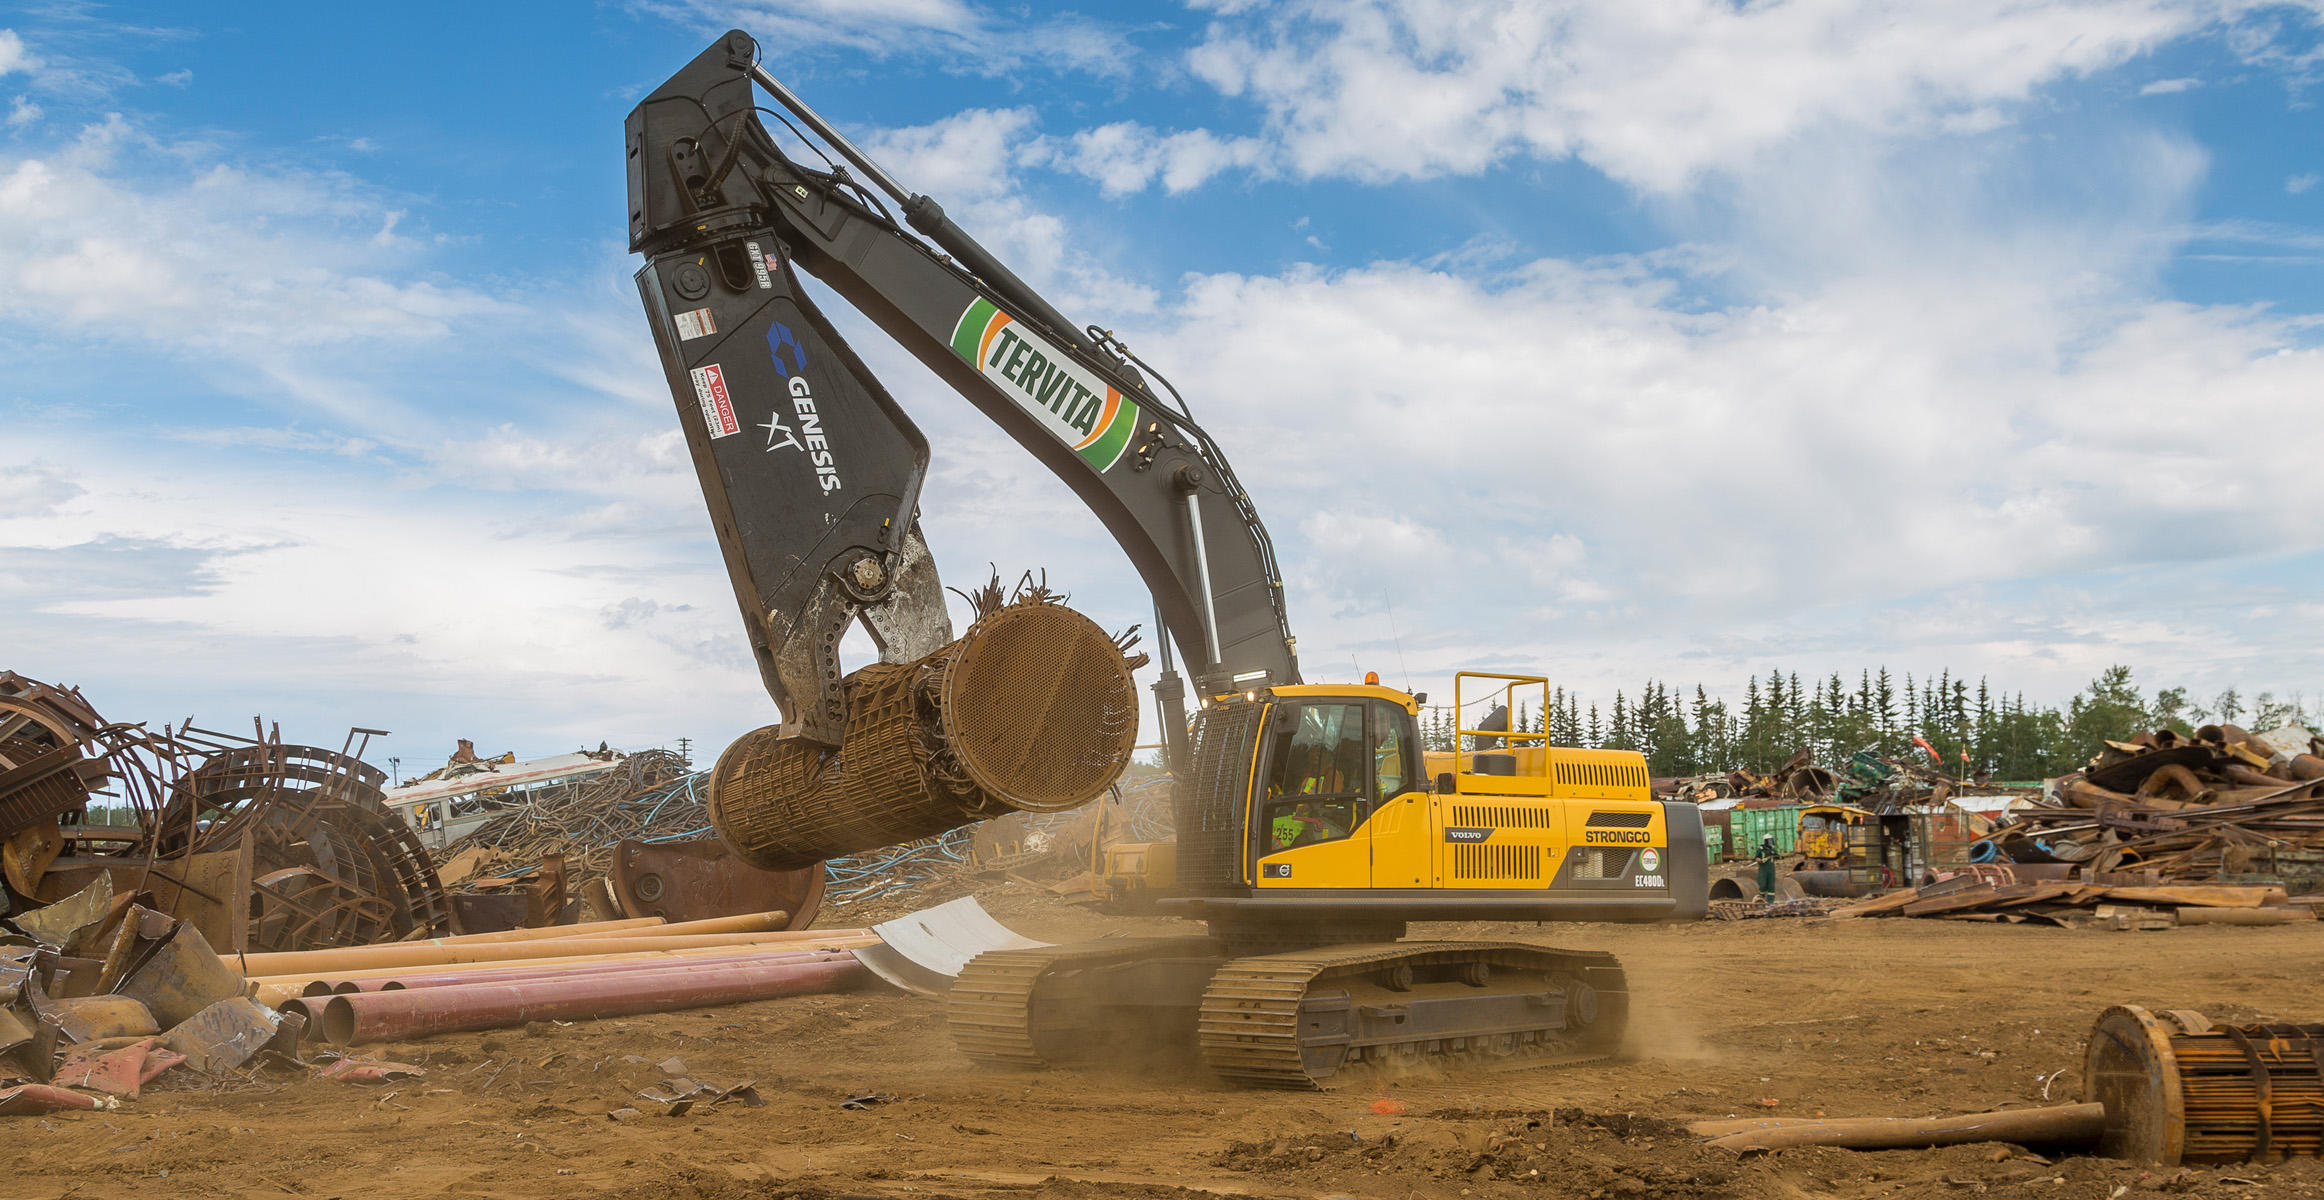 Tervita uses Volvo excavators for metal recycling